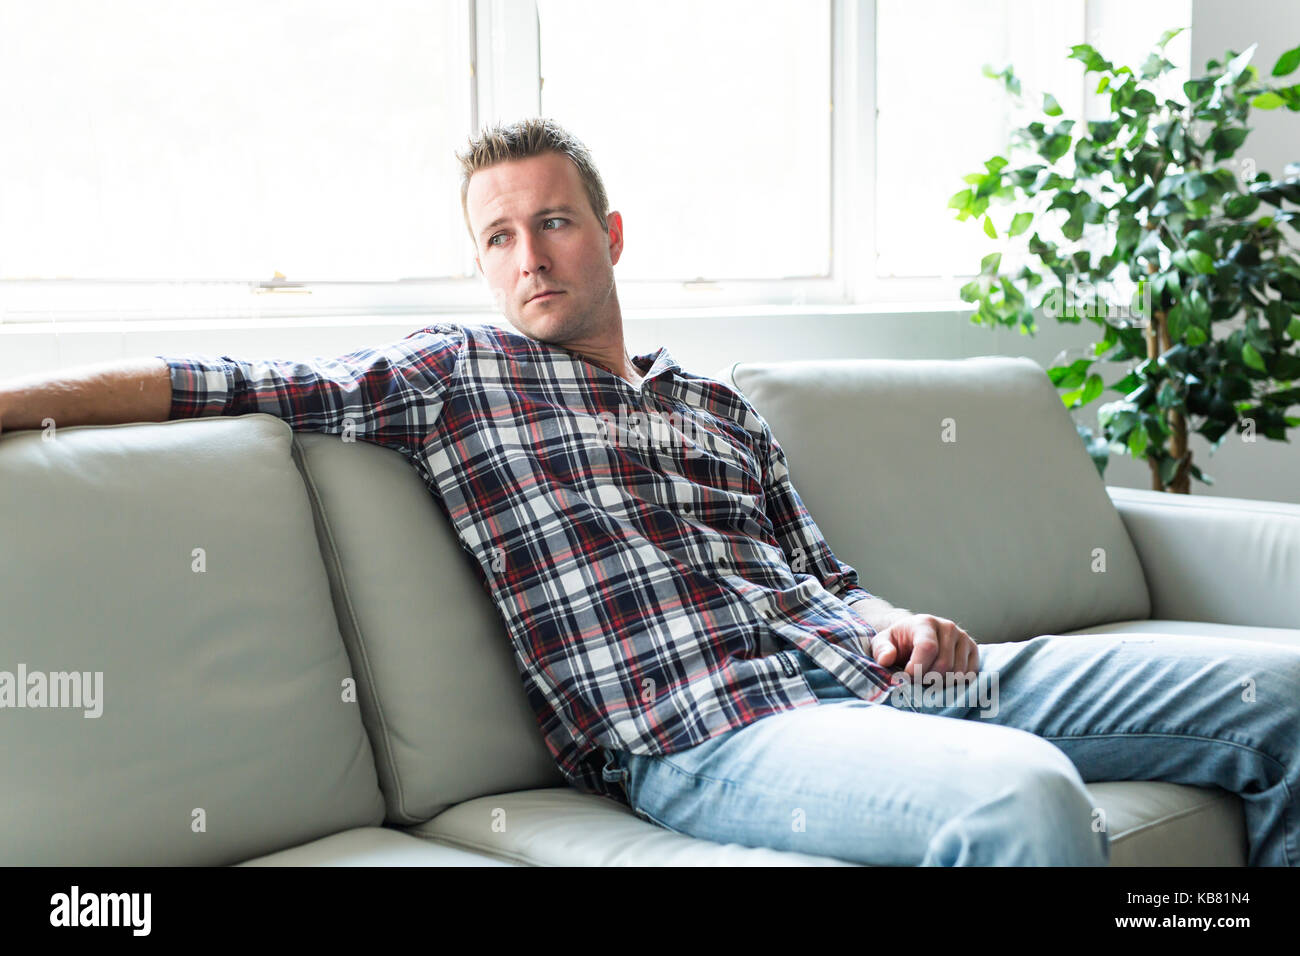 Depressed man thinking on the sofa alone at home - Stock Image